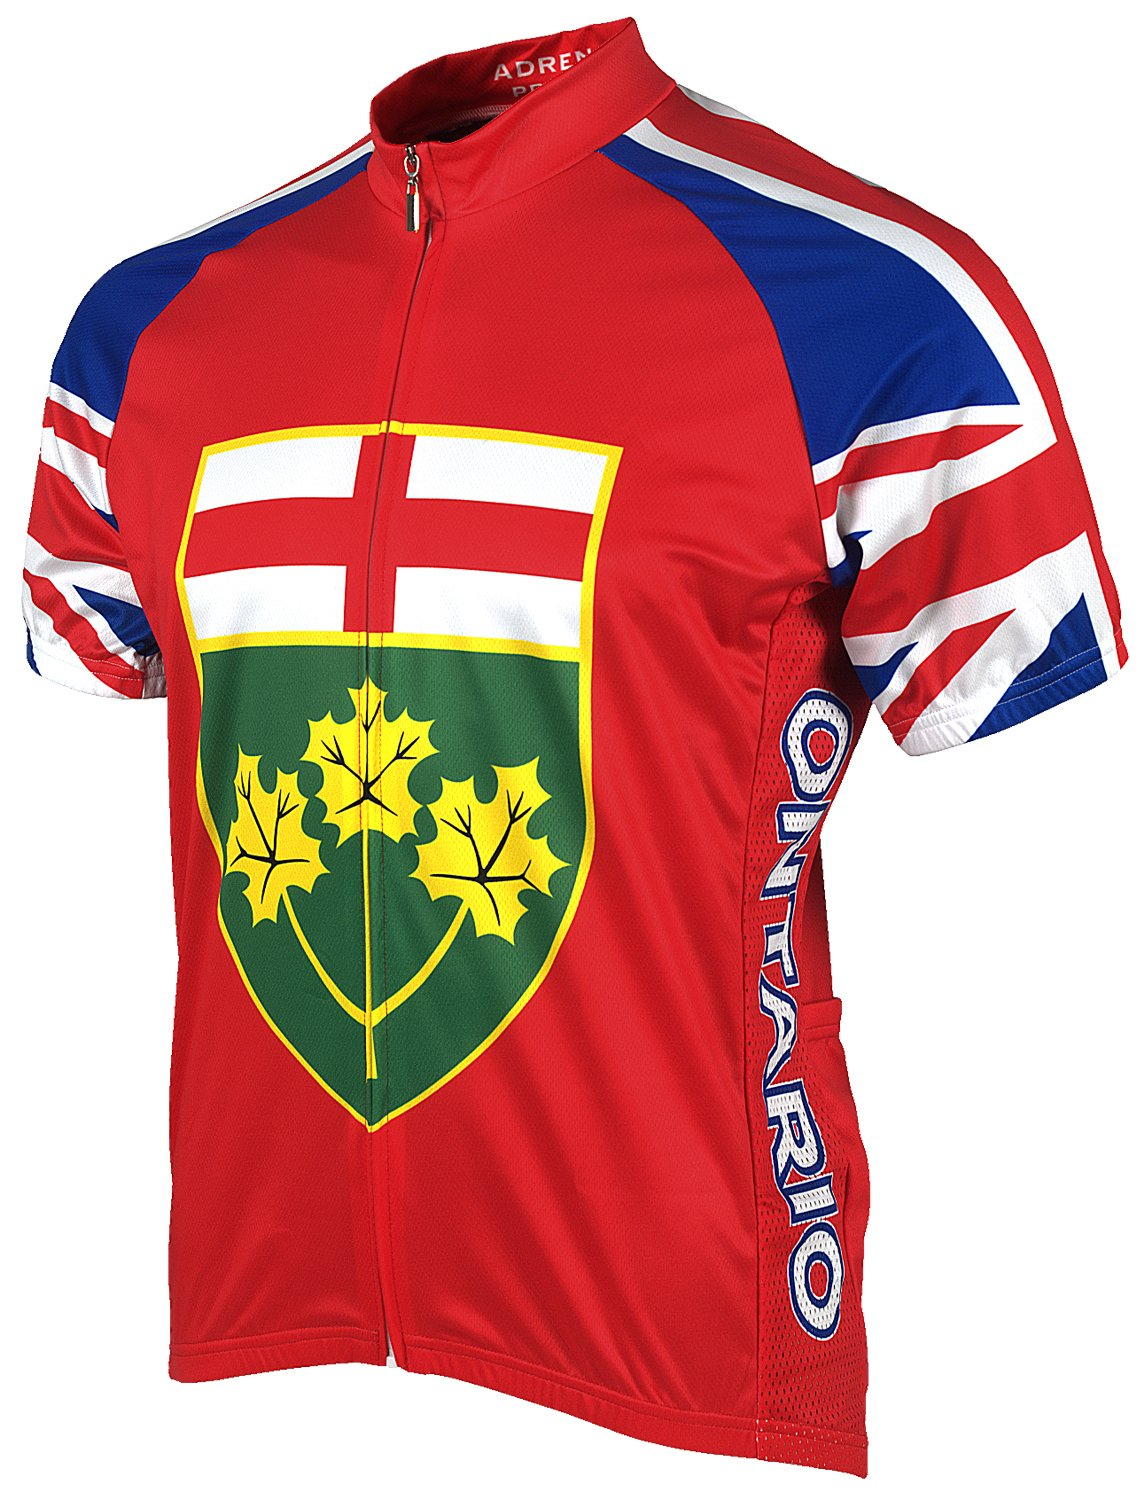 Adrenaline Promotions Canadian Provinces Ontario Cycling Jersey ADRE2